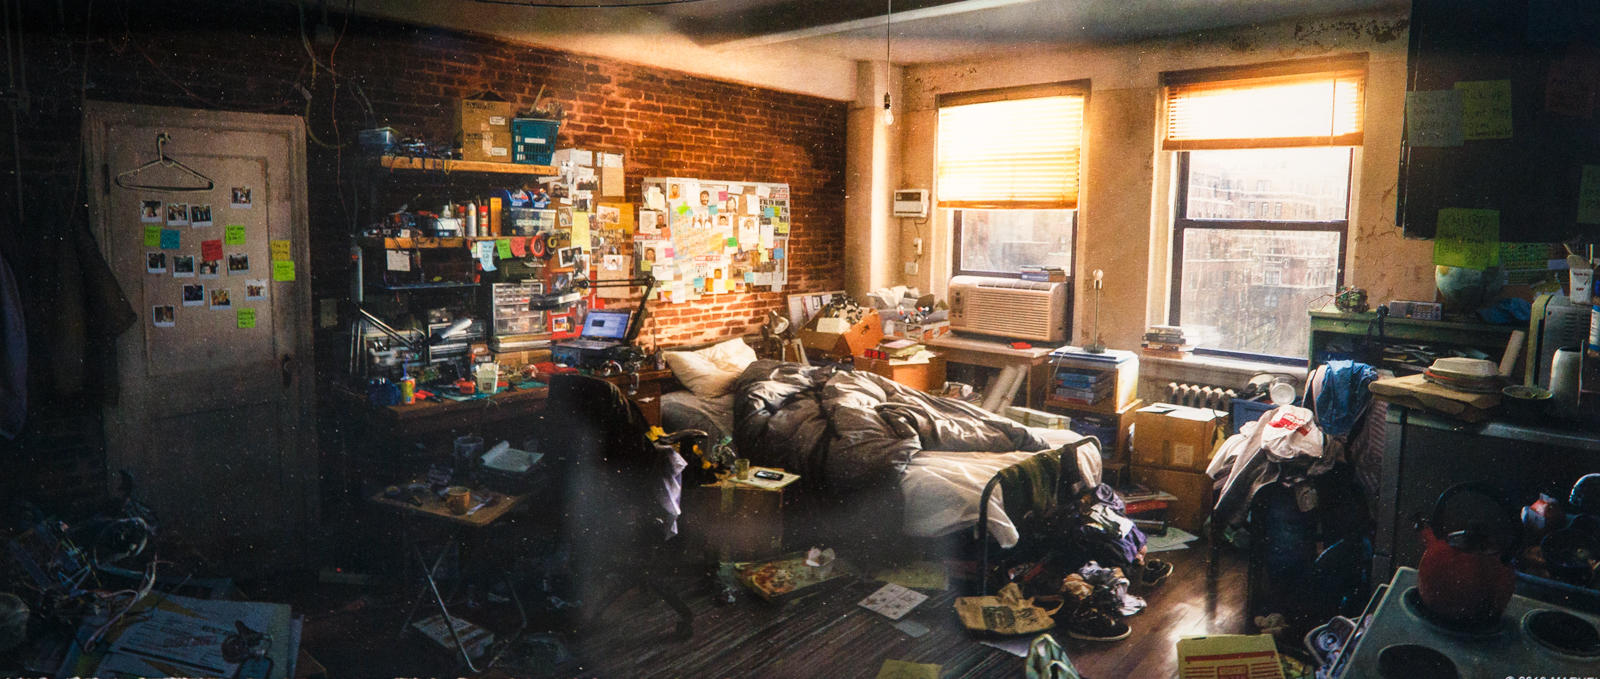 Peter Parker's Apartment by Dennis Chan